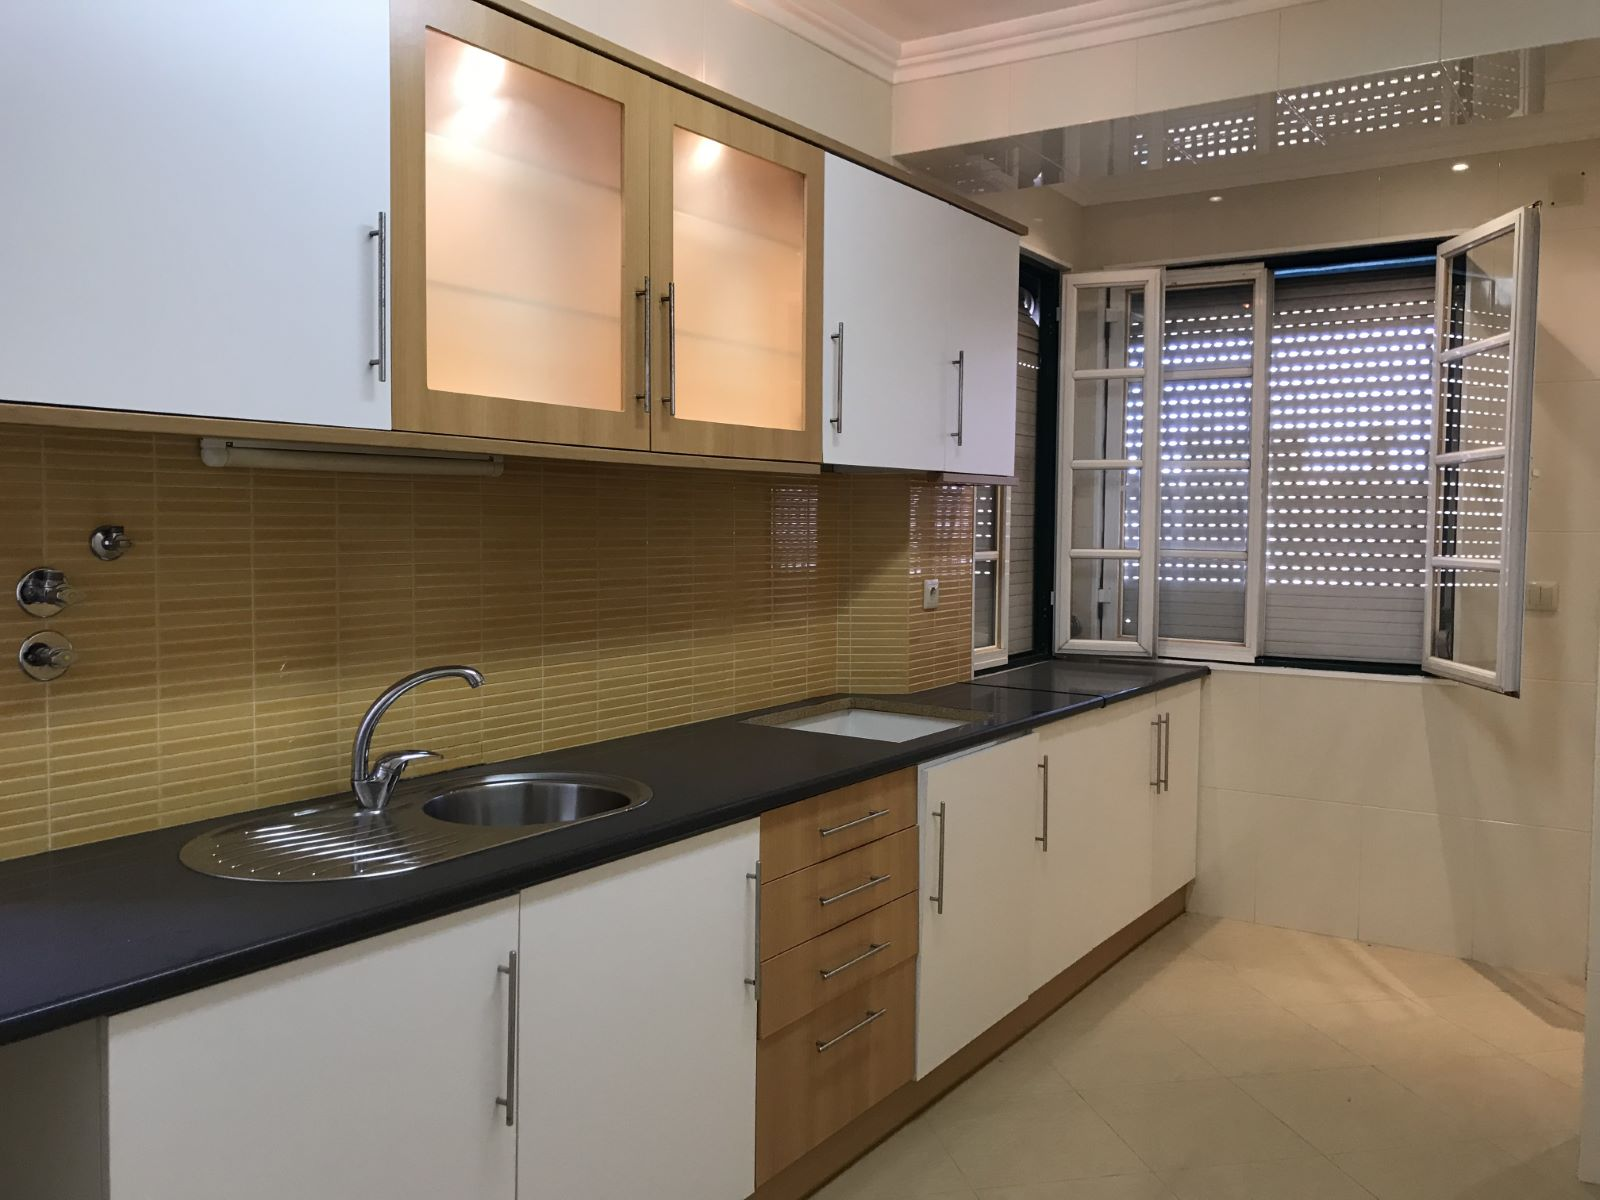 2-BEDROOM APARTMENT TO RENOVATE IN OLAIAS, LISBON